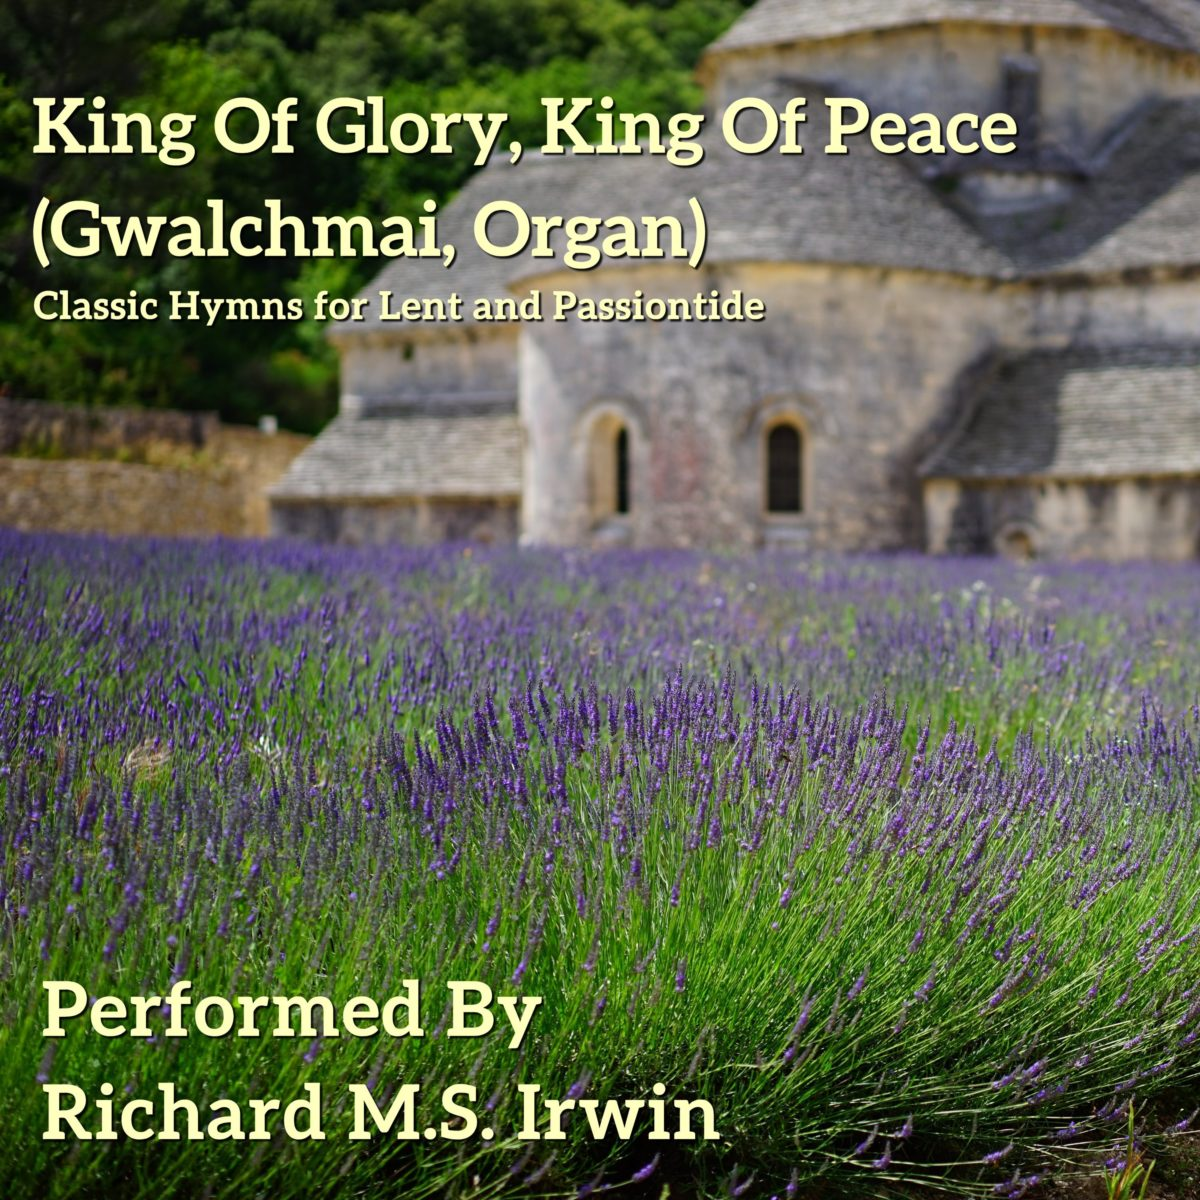 King Of Glory, King Of Peace (Gwalchmai, Organ, 3 Verses)